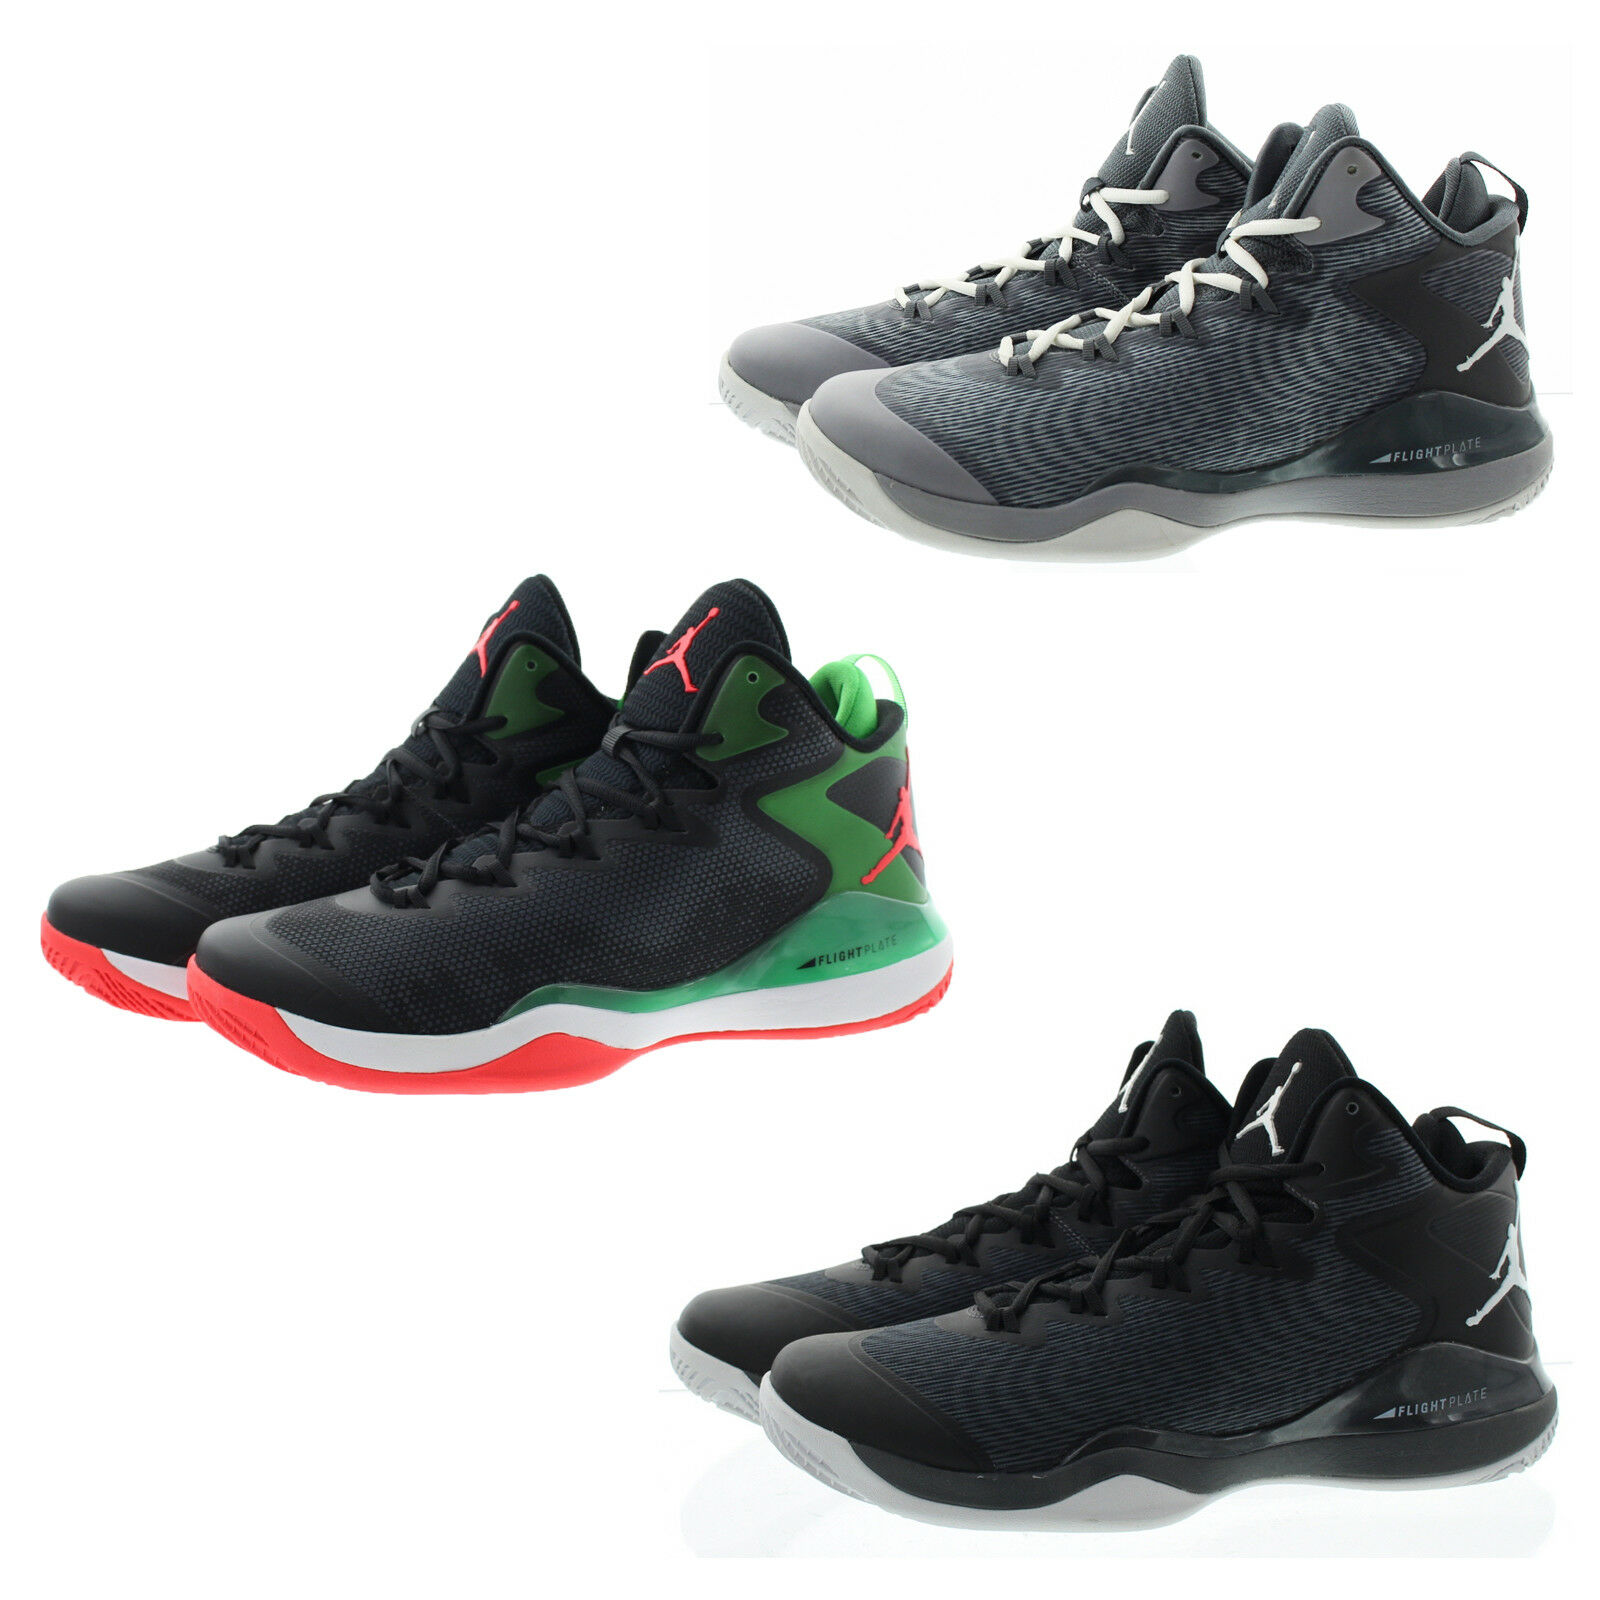 timeless design e5495 6c88a norway nike air yeezy 2 schwarzout d1f80 69fdd